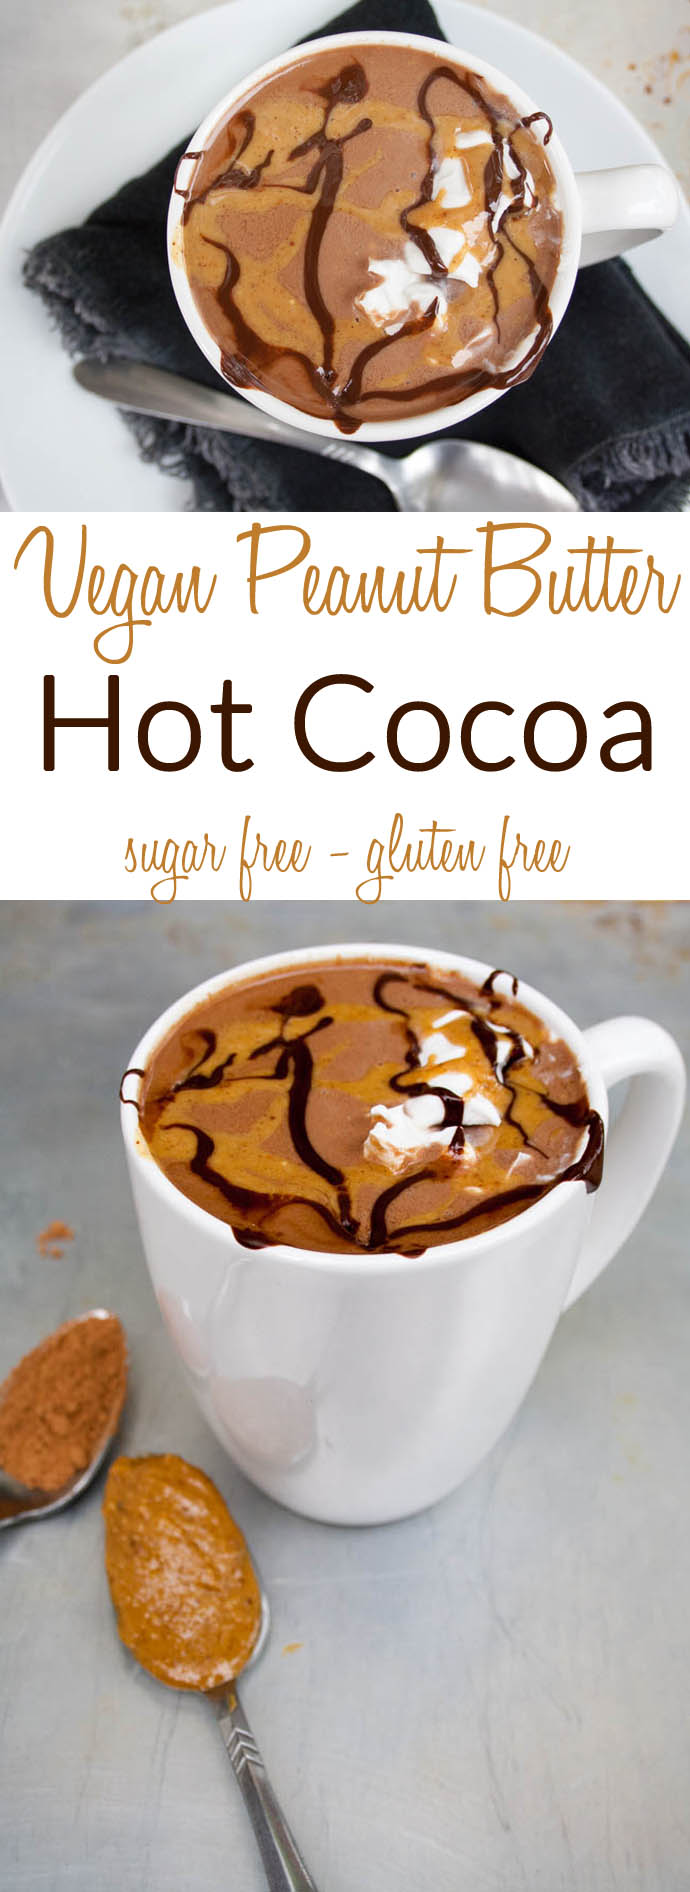 Vegan Peanut Butter Hot Cocoa collage photo with text